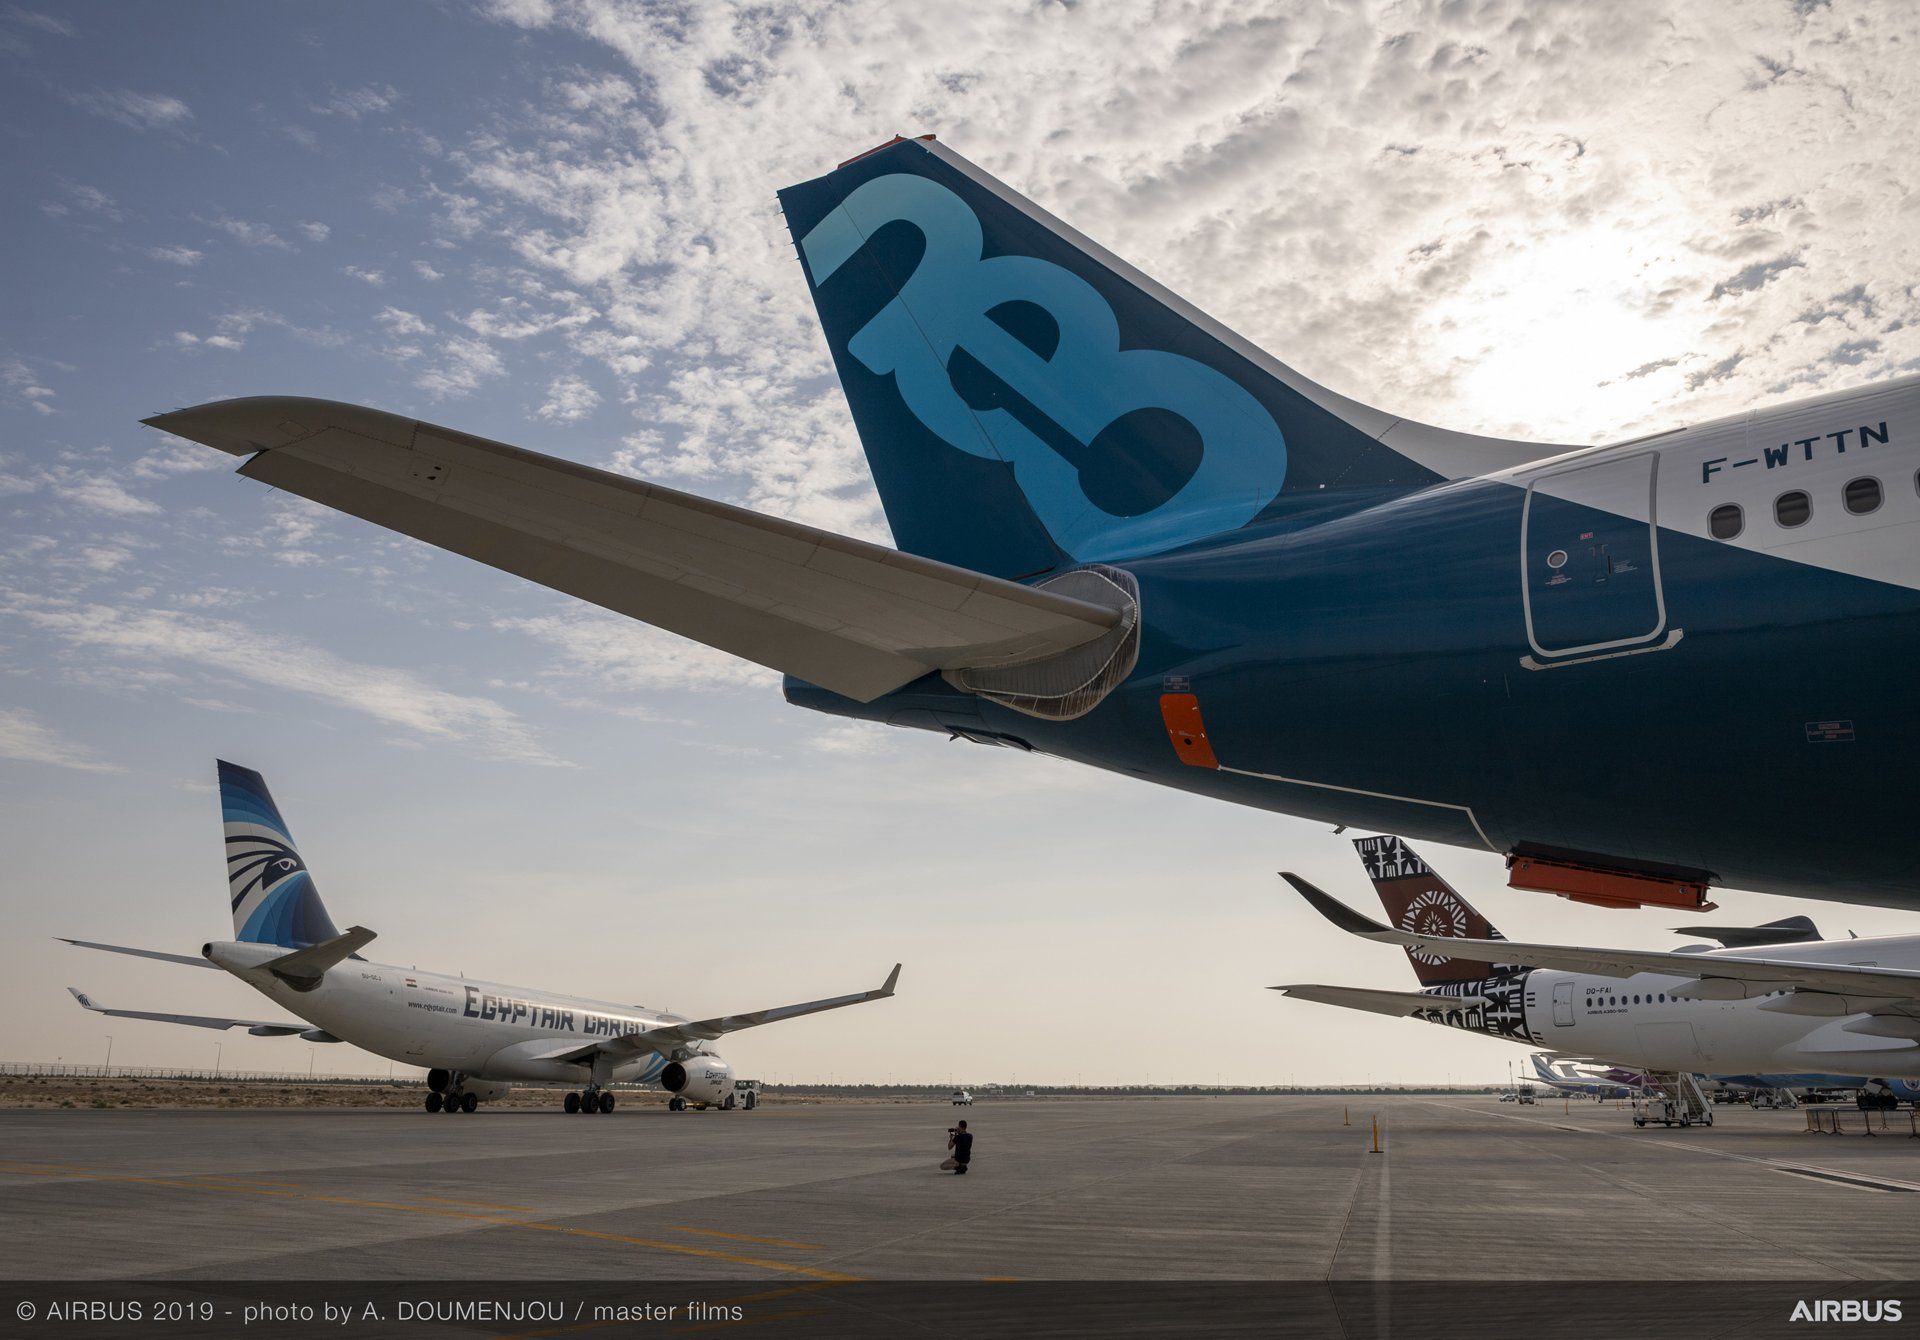 Two wide-body members of Airbus' product line of commercial jetliners – the A330neo and A350 XWB – are shown on display at the 2019 Dubai Airshow, joined by a single-aisle A220-300